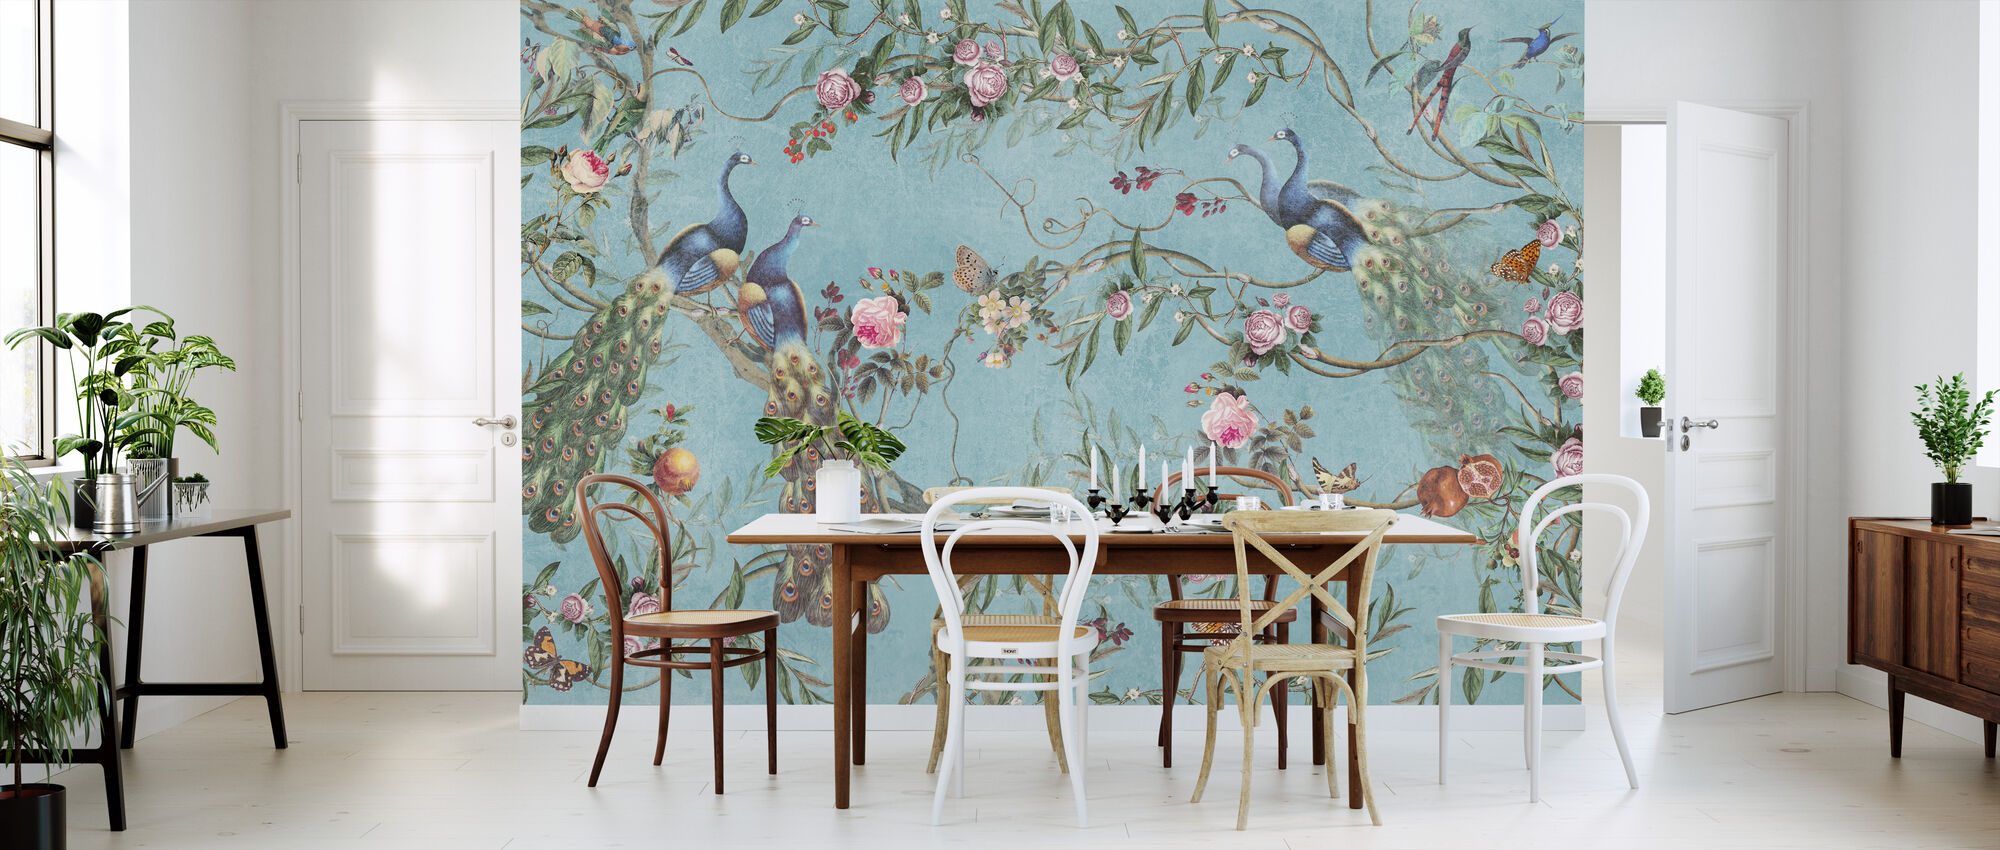 Peacocks and Flowers - Wallpaper - Kitchen